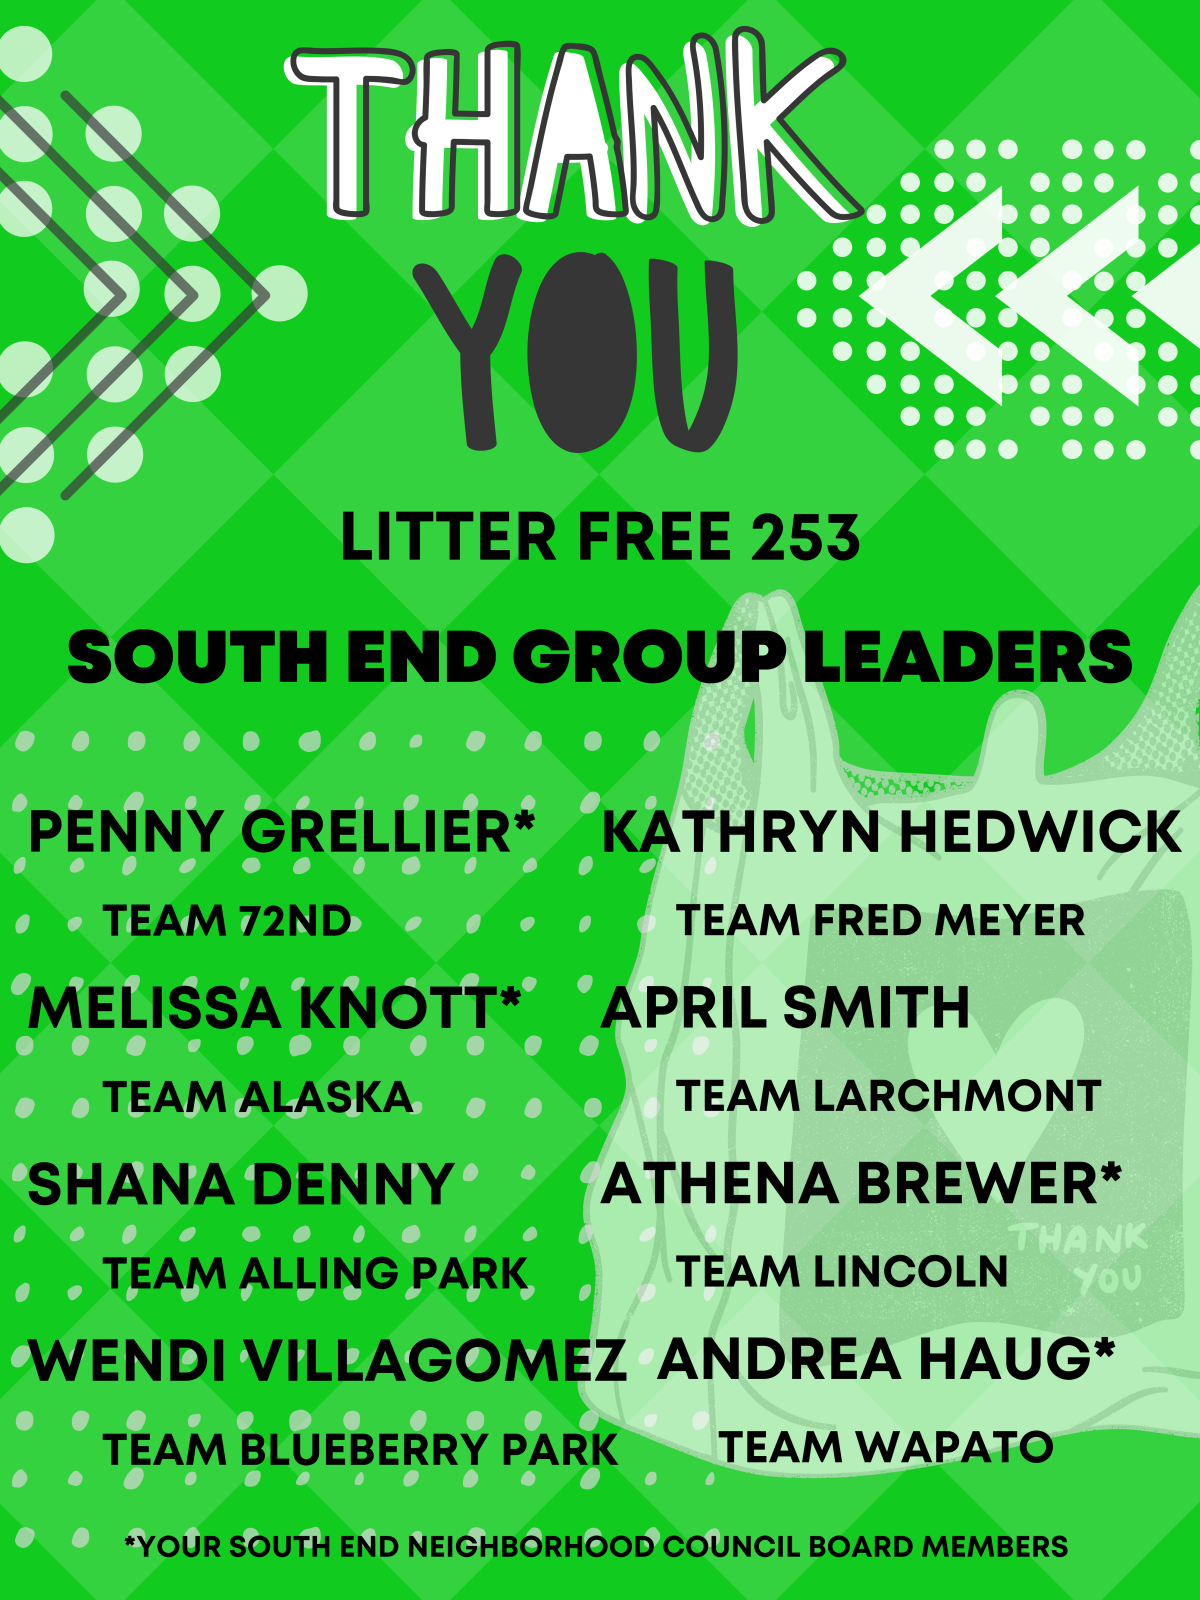 LitterFree253 Thanks to All!